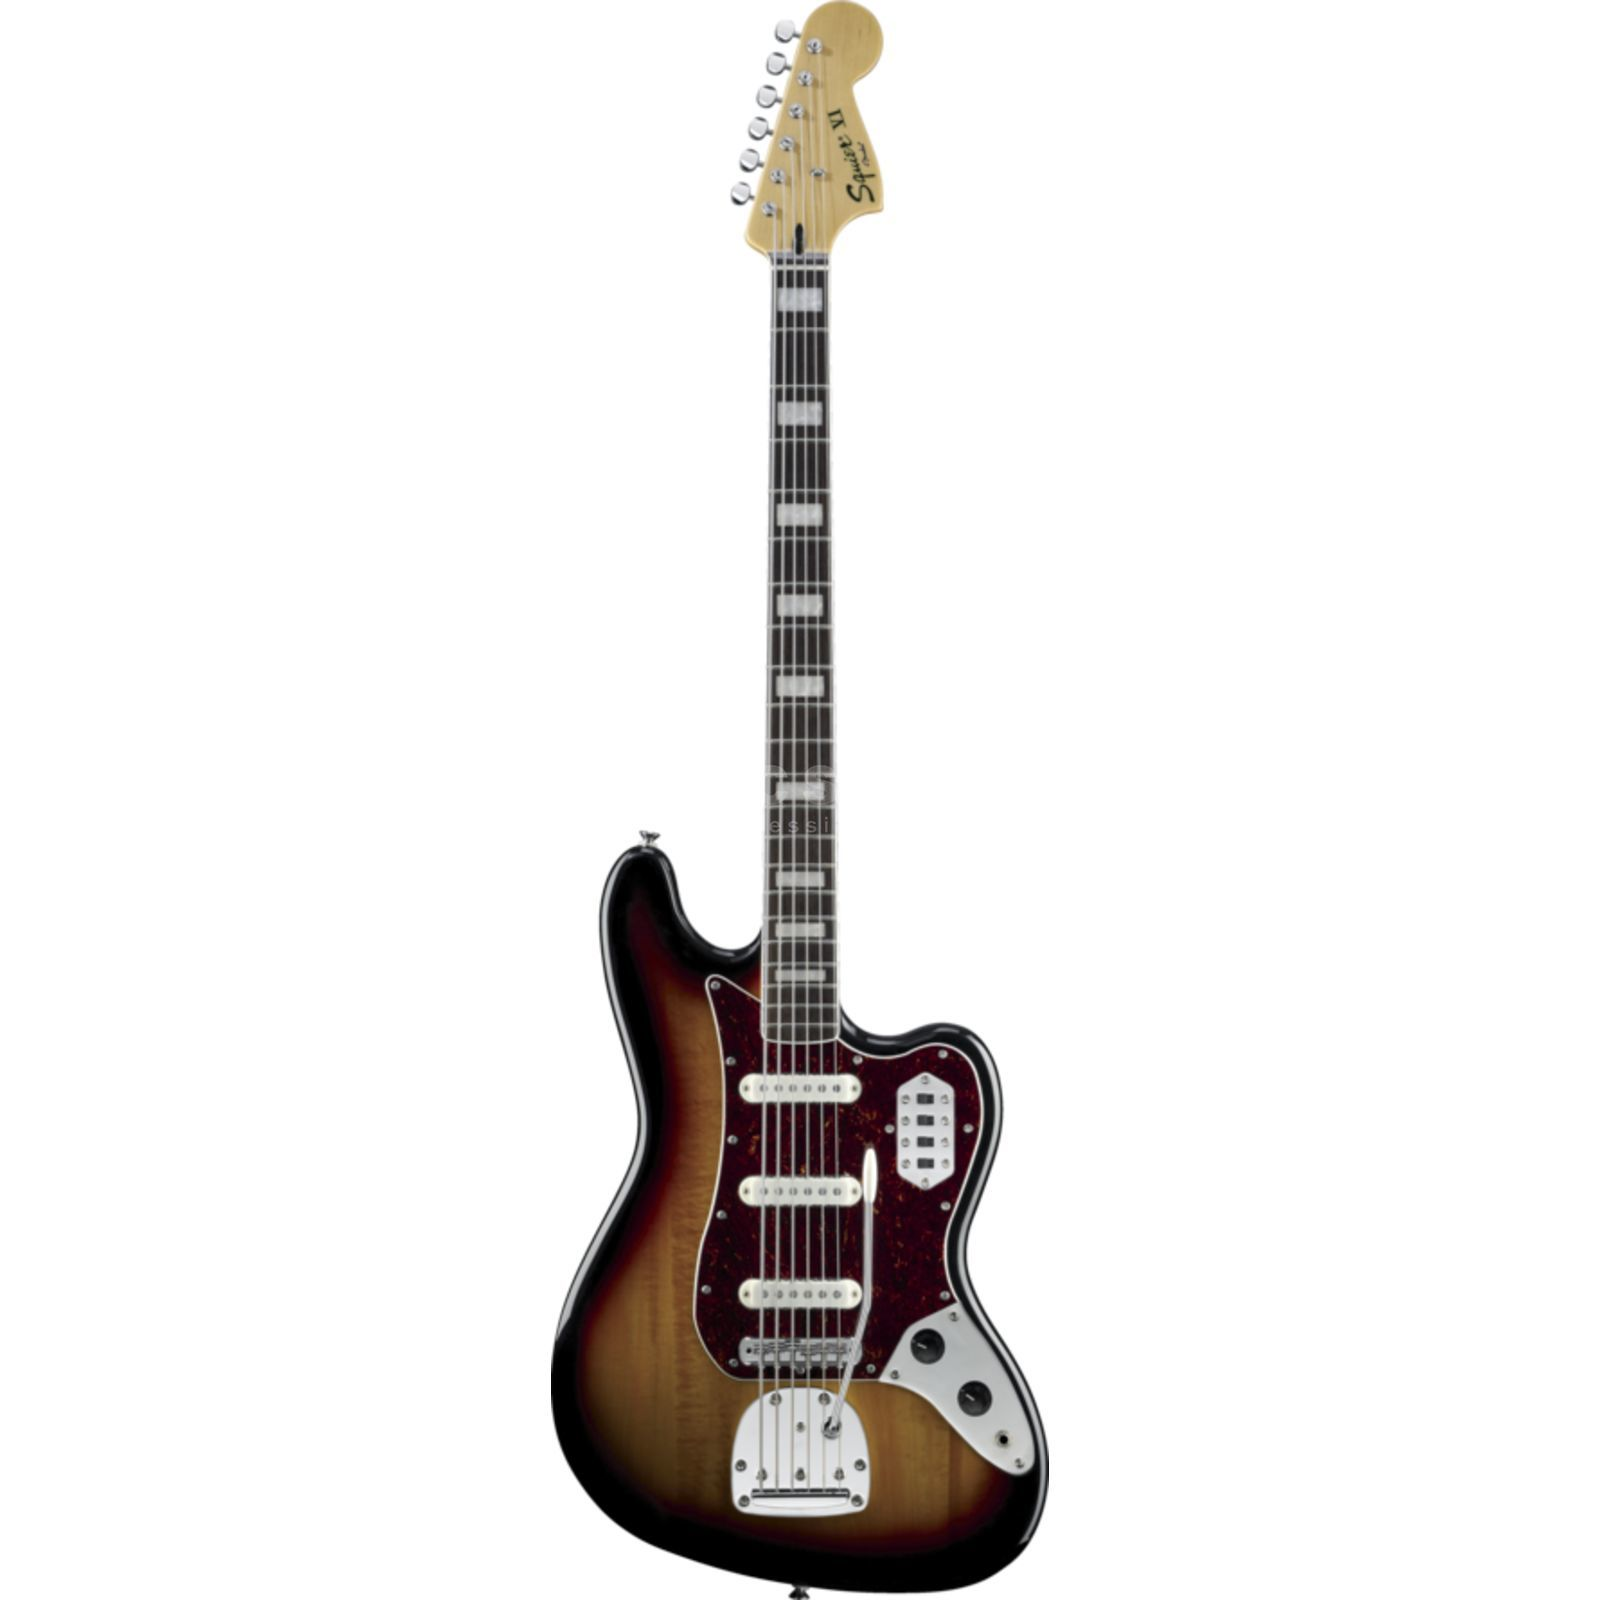 Fender Squier VM bas VI RW 3CS 3-Color Sunburst Productafbeelding